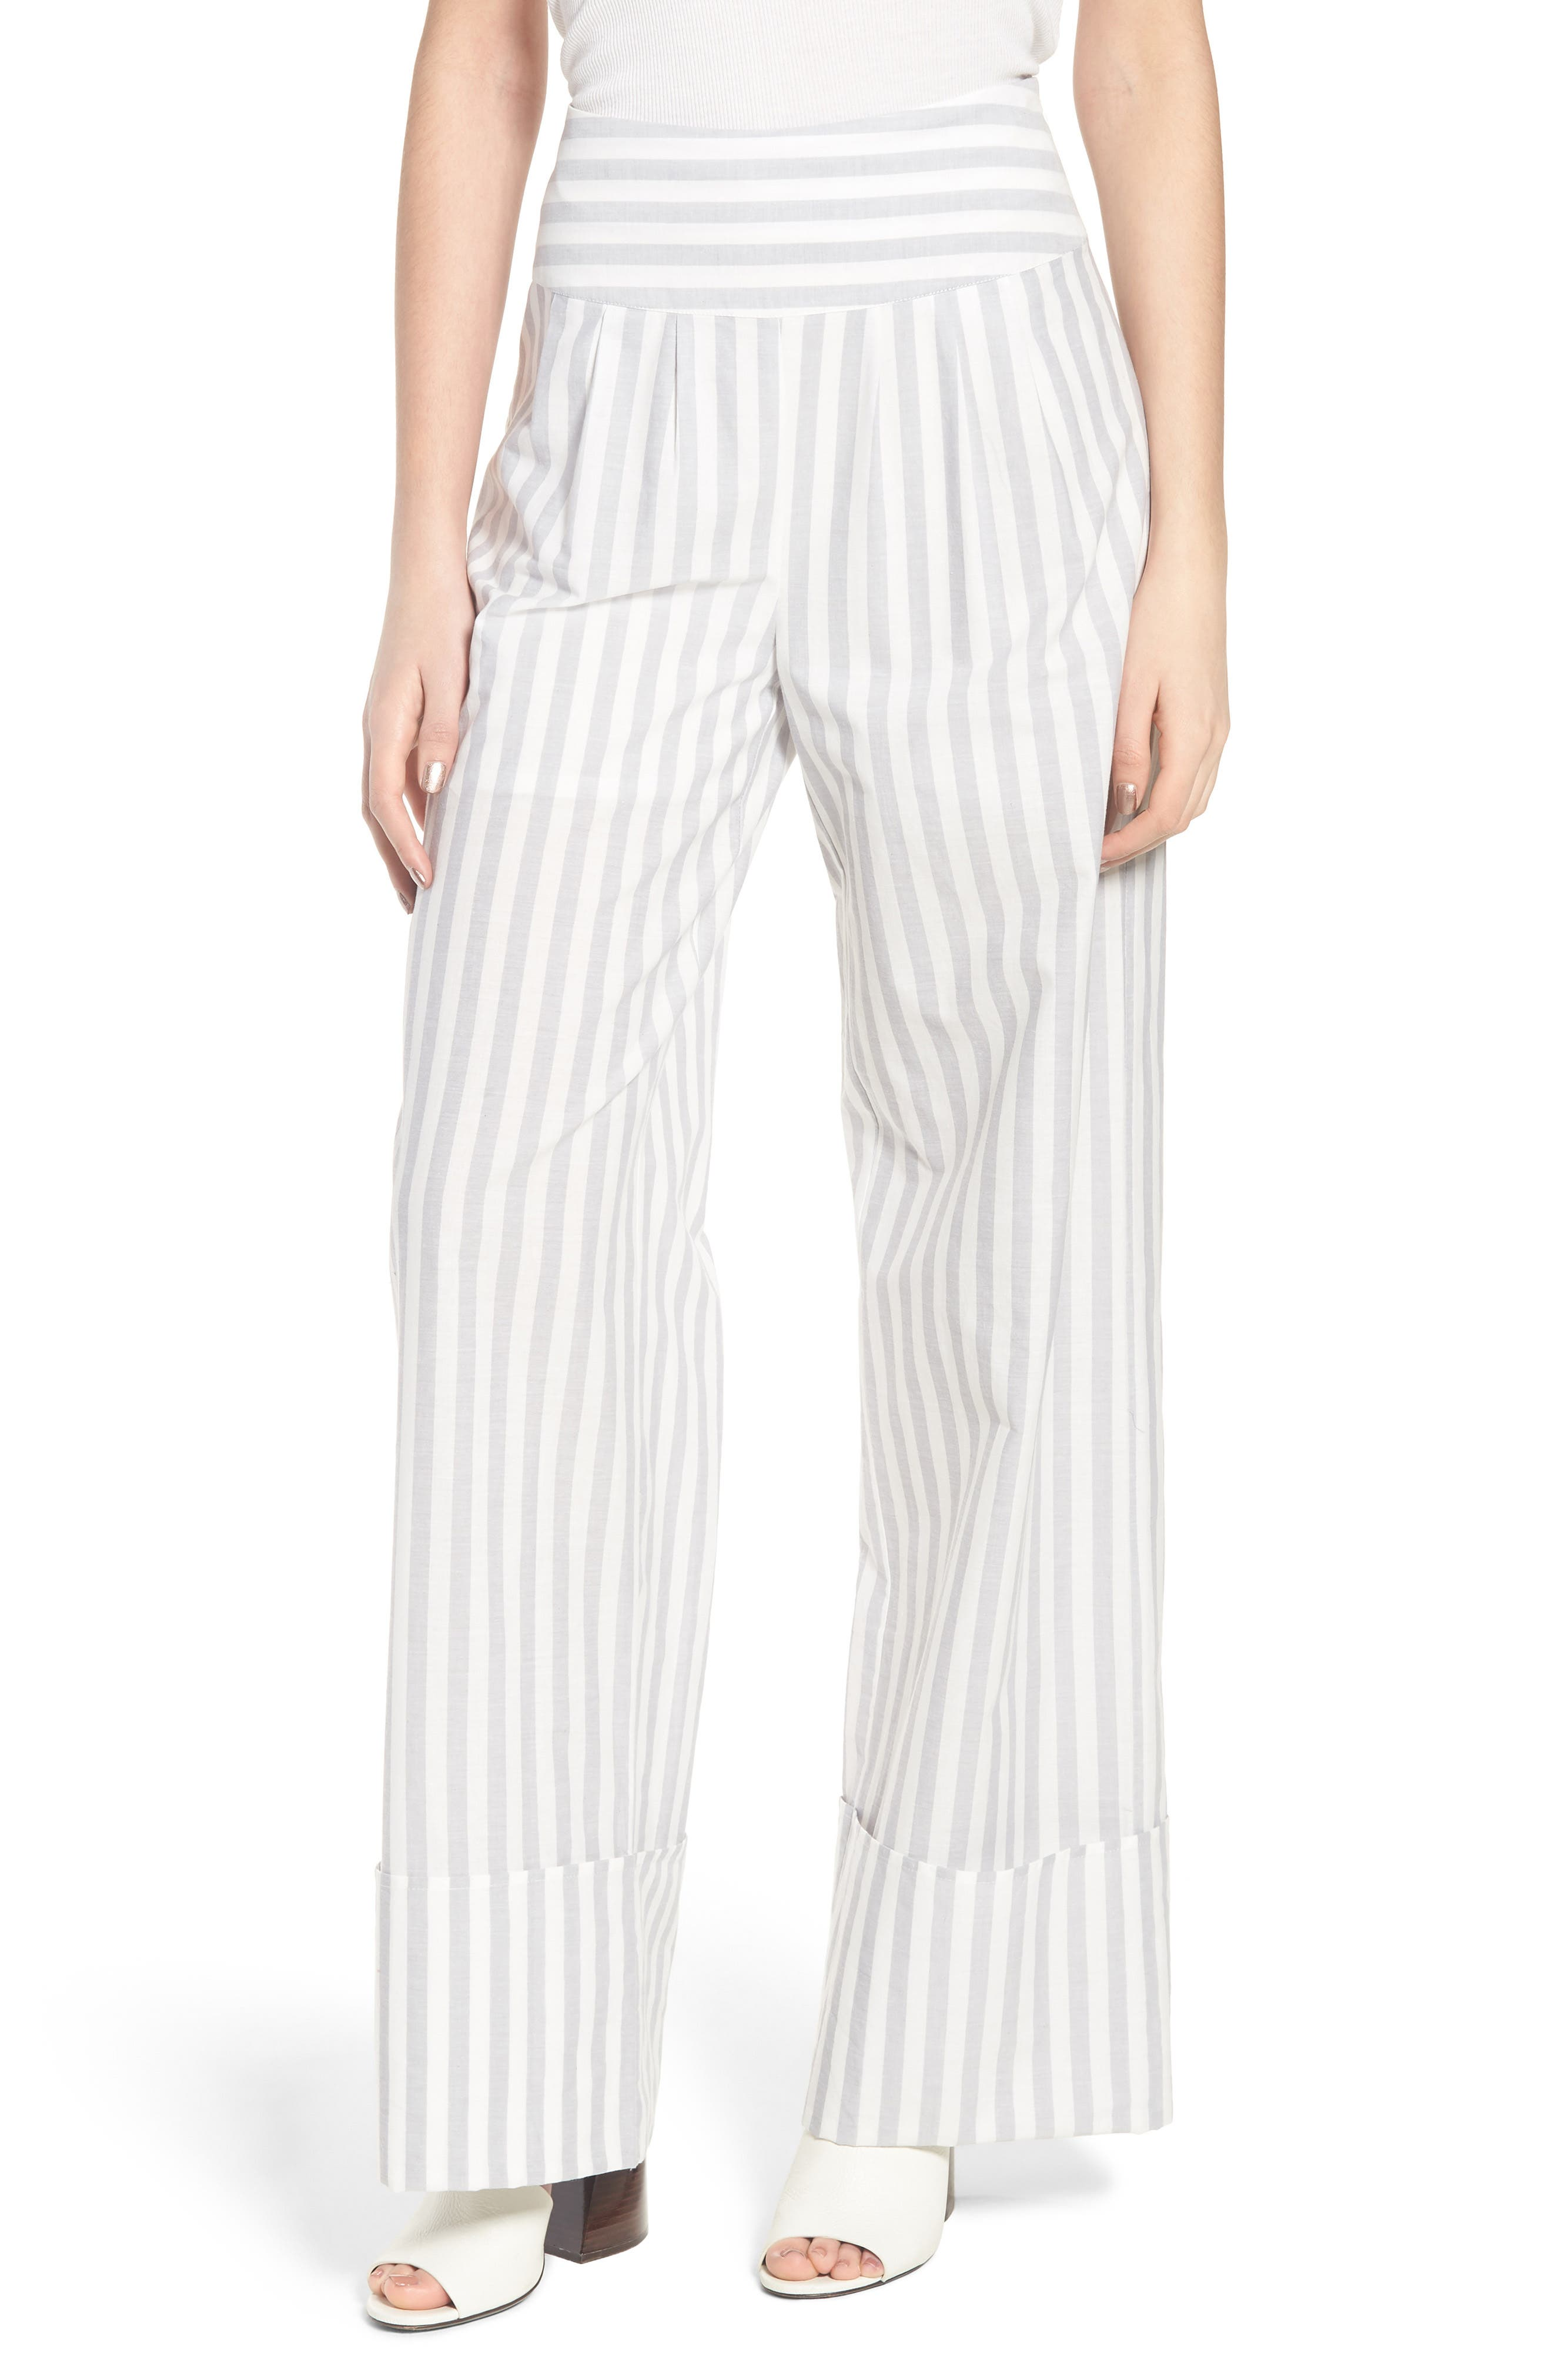 LOST INK Wide Turn Up Stripe Trouser, Main, color, 020